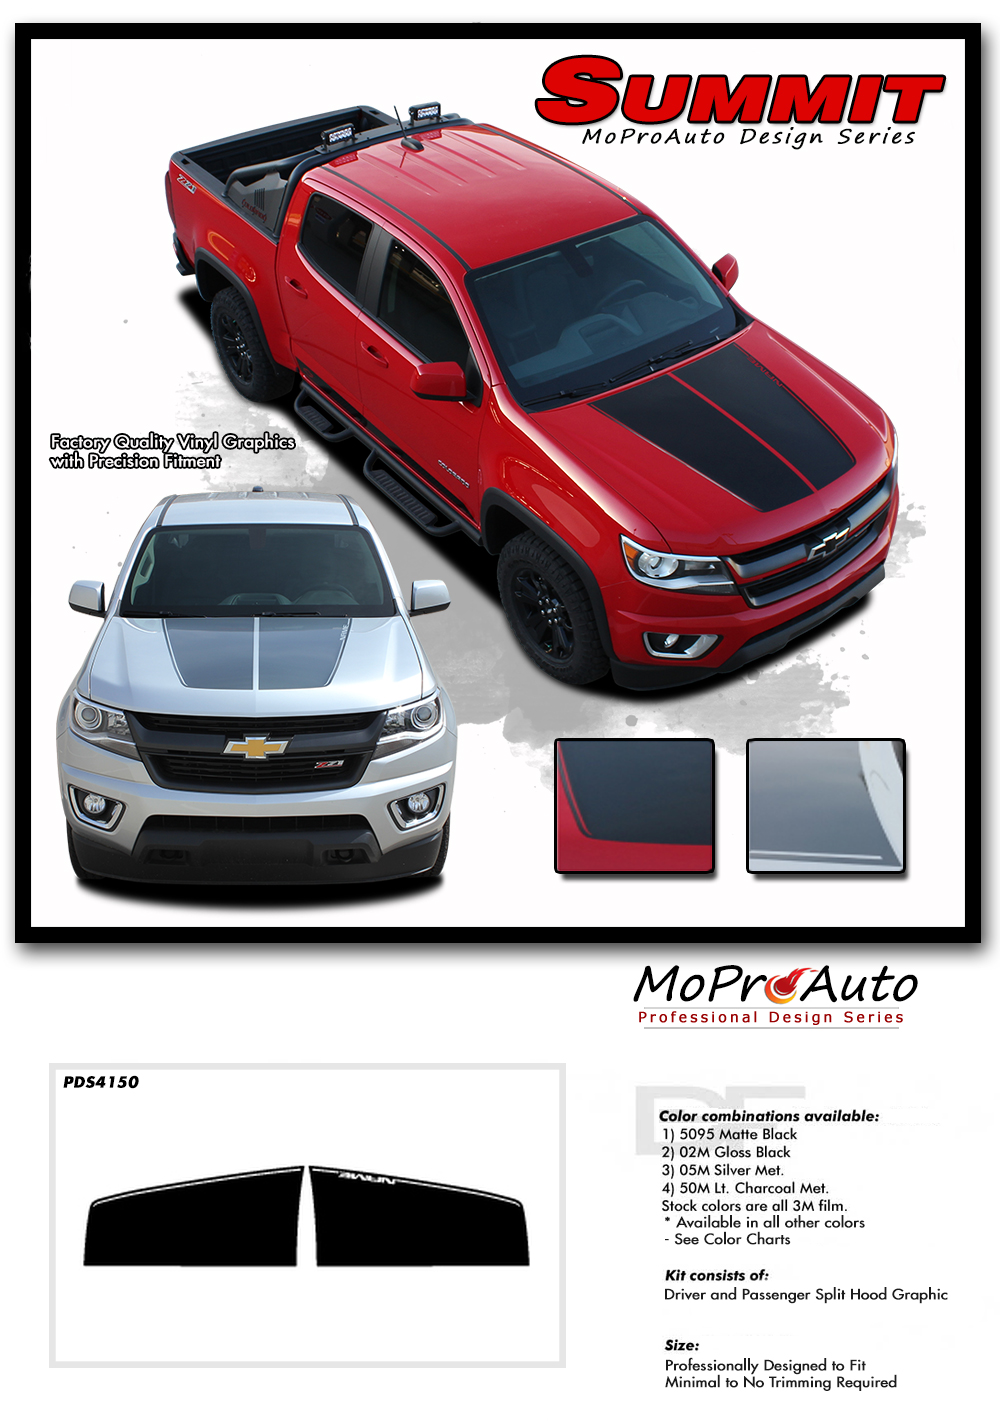 2015 2016 2017 2018 2019 2020 CHEVY COLORADO - MoProAuto Pro Design Series Vinyl Graphics, Stripes and Decals Kit